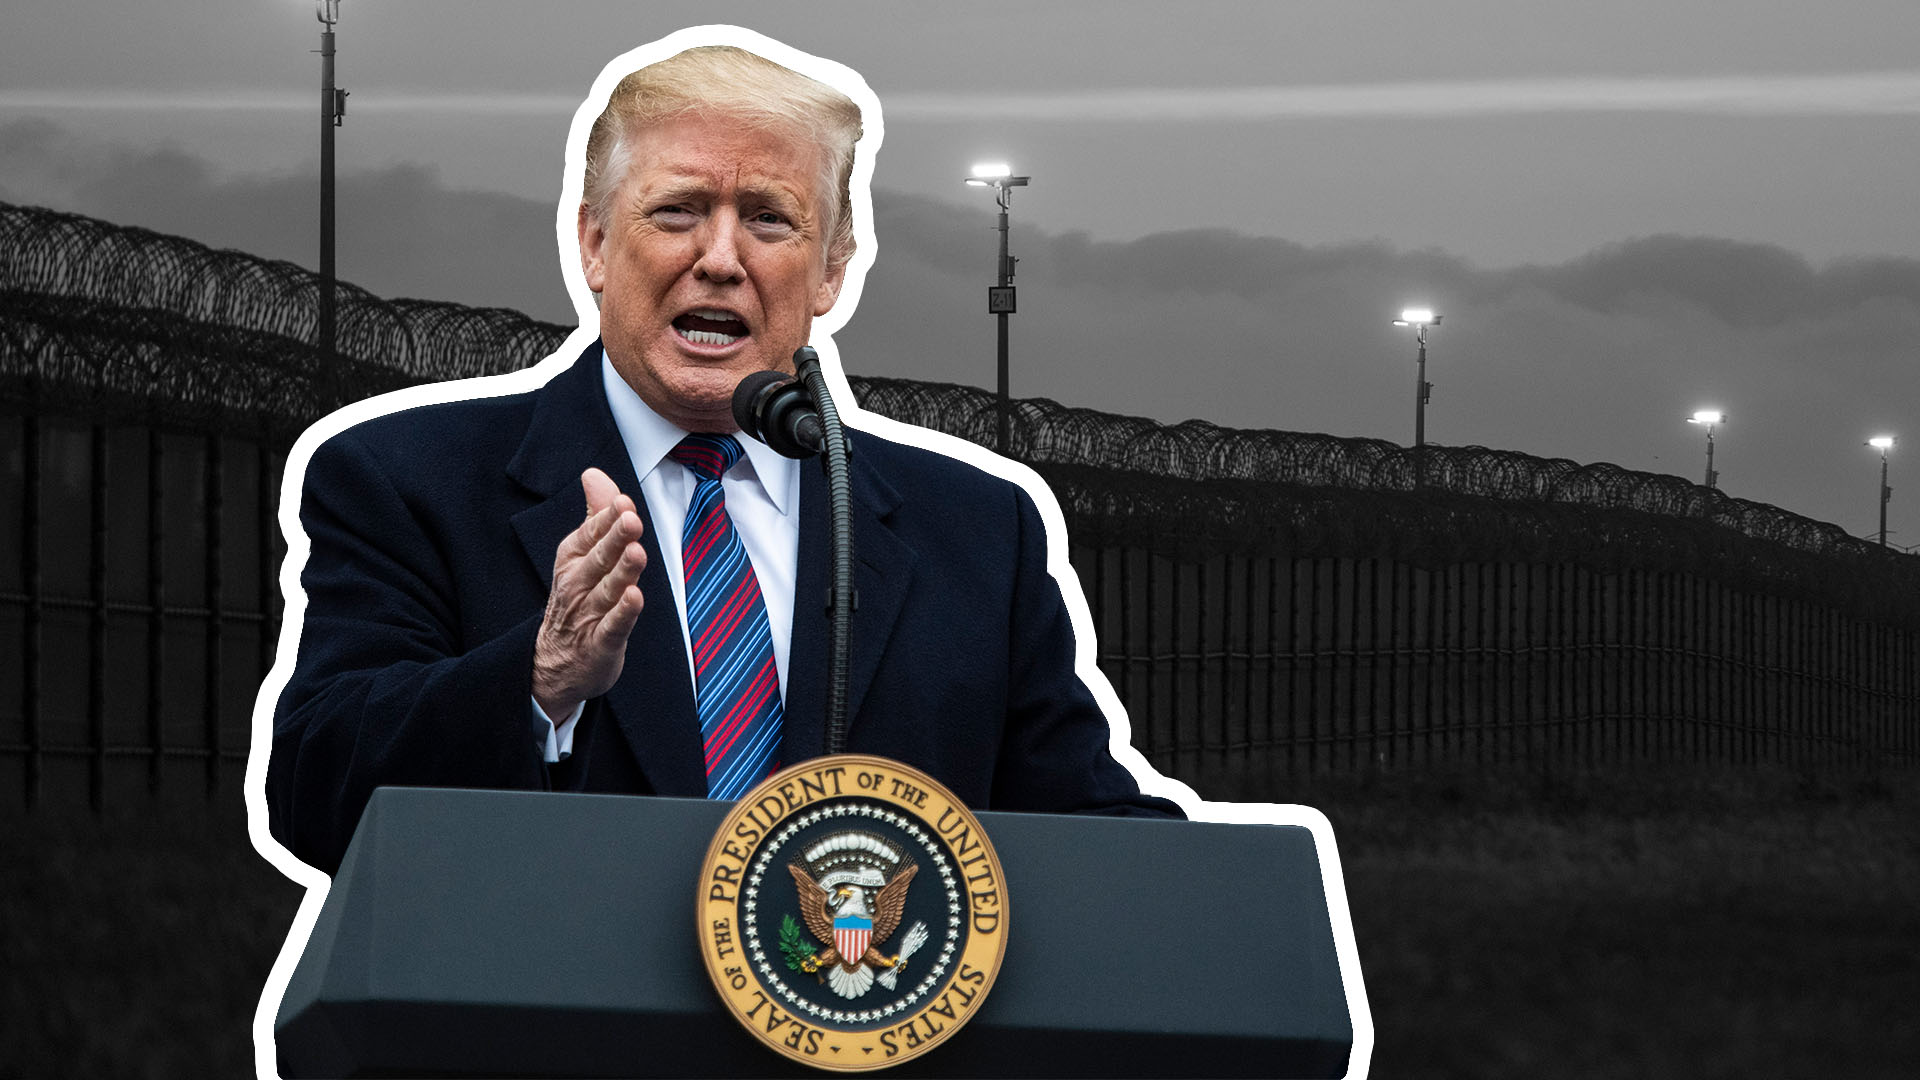 Trump administration tells judge Congress did not deny border wall funds when it declined to appropriate money for it